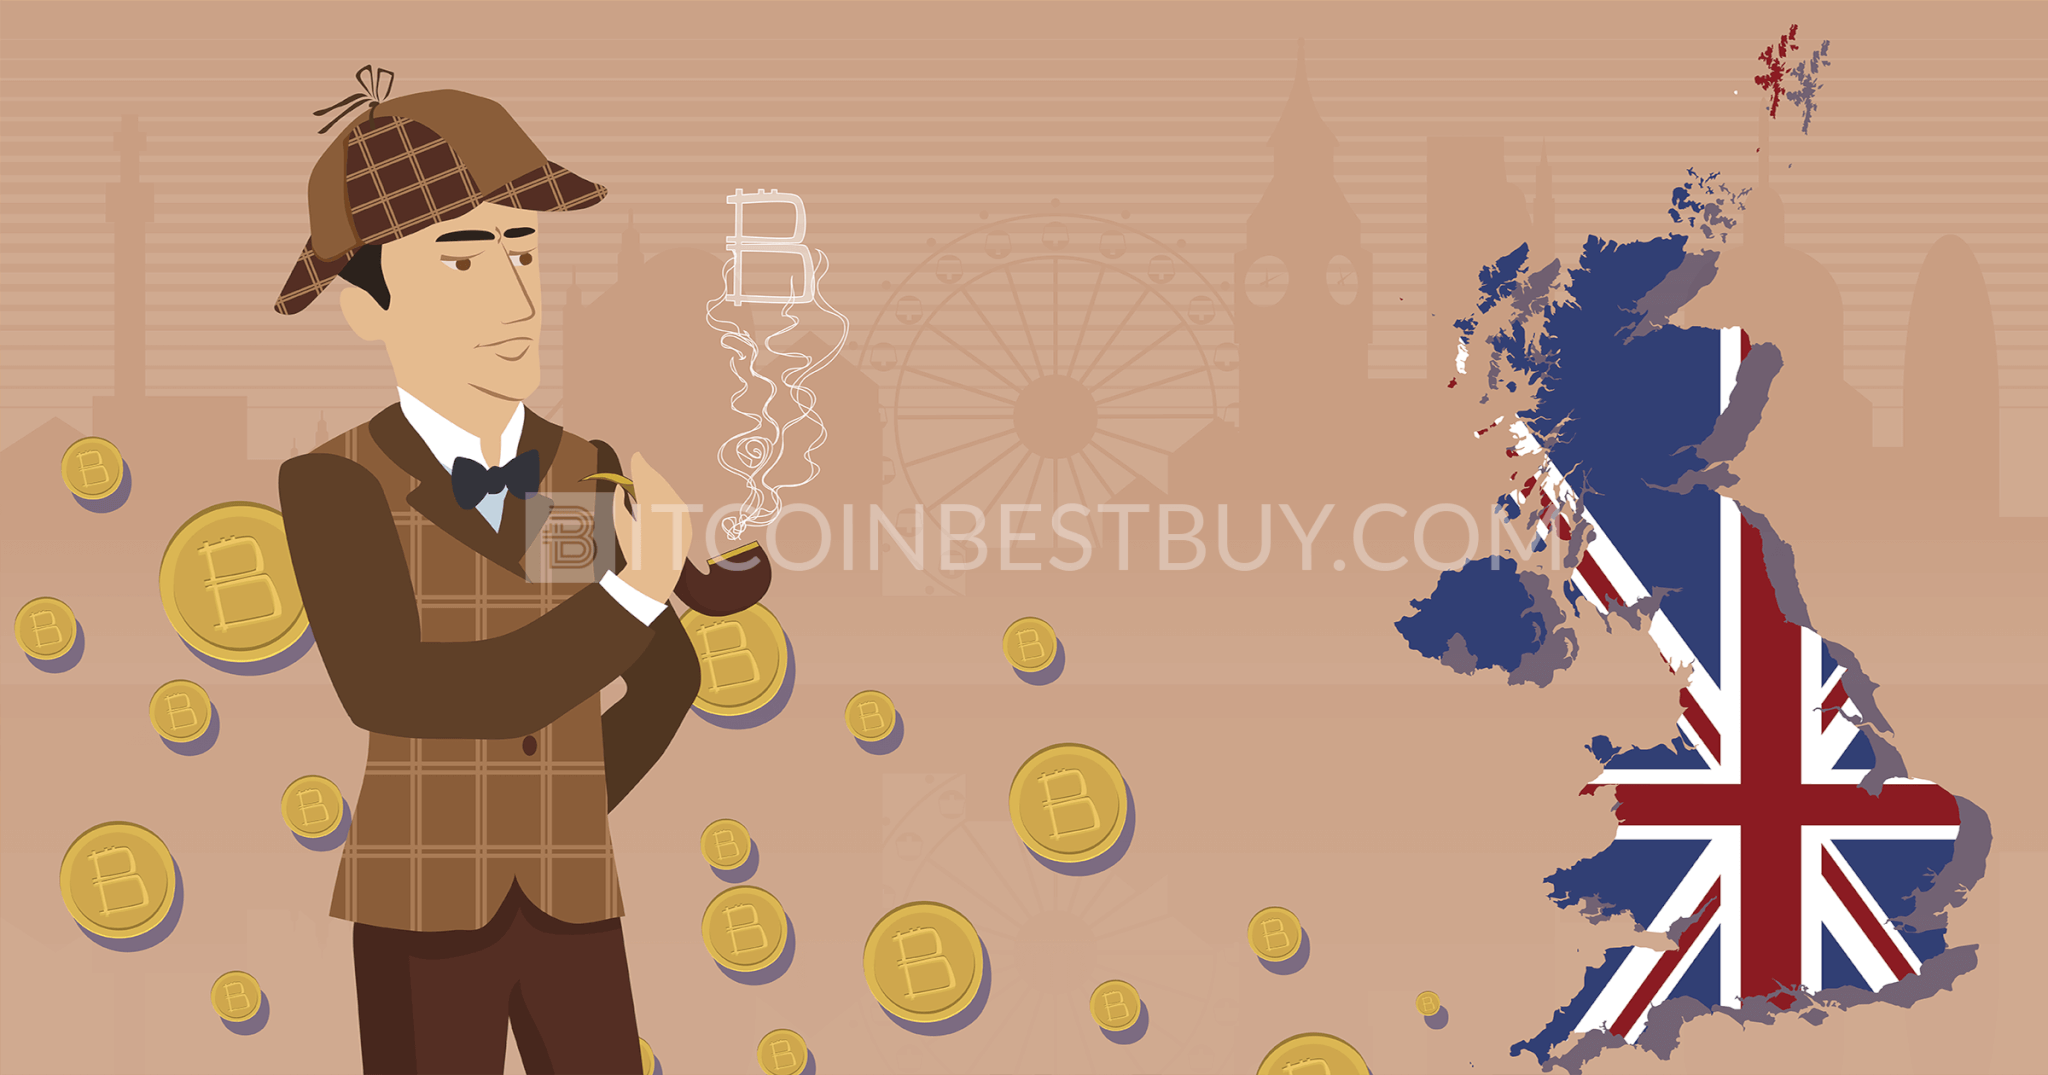 How to buy bitcoin in the uk cheapest and easiest ways to get btc this article will show you how to purchase bitcoins uk easy way while listing many different companies with accepted payment methods fees pros and cons ccuart Images